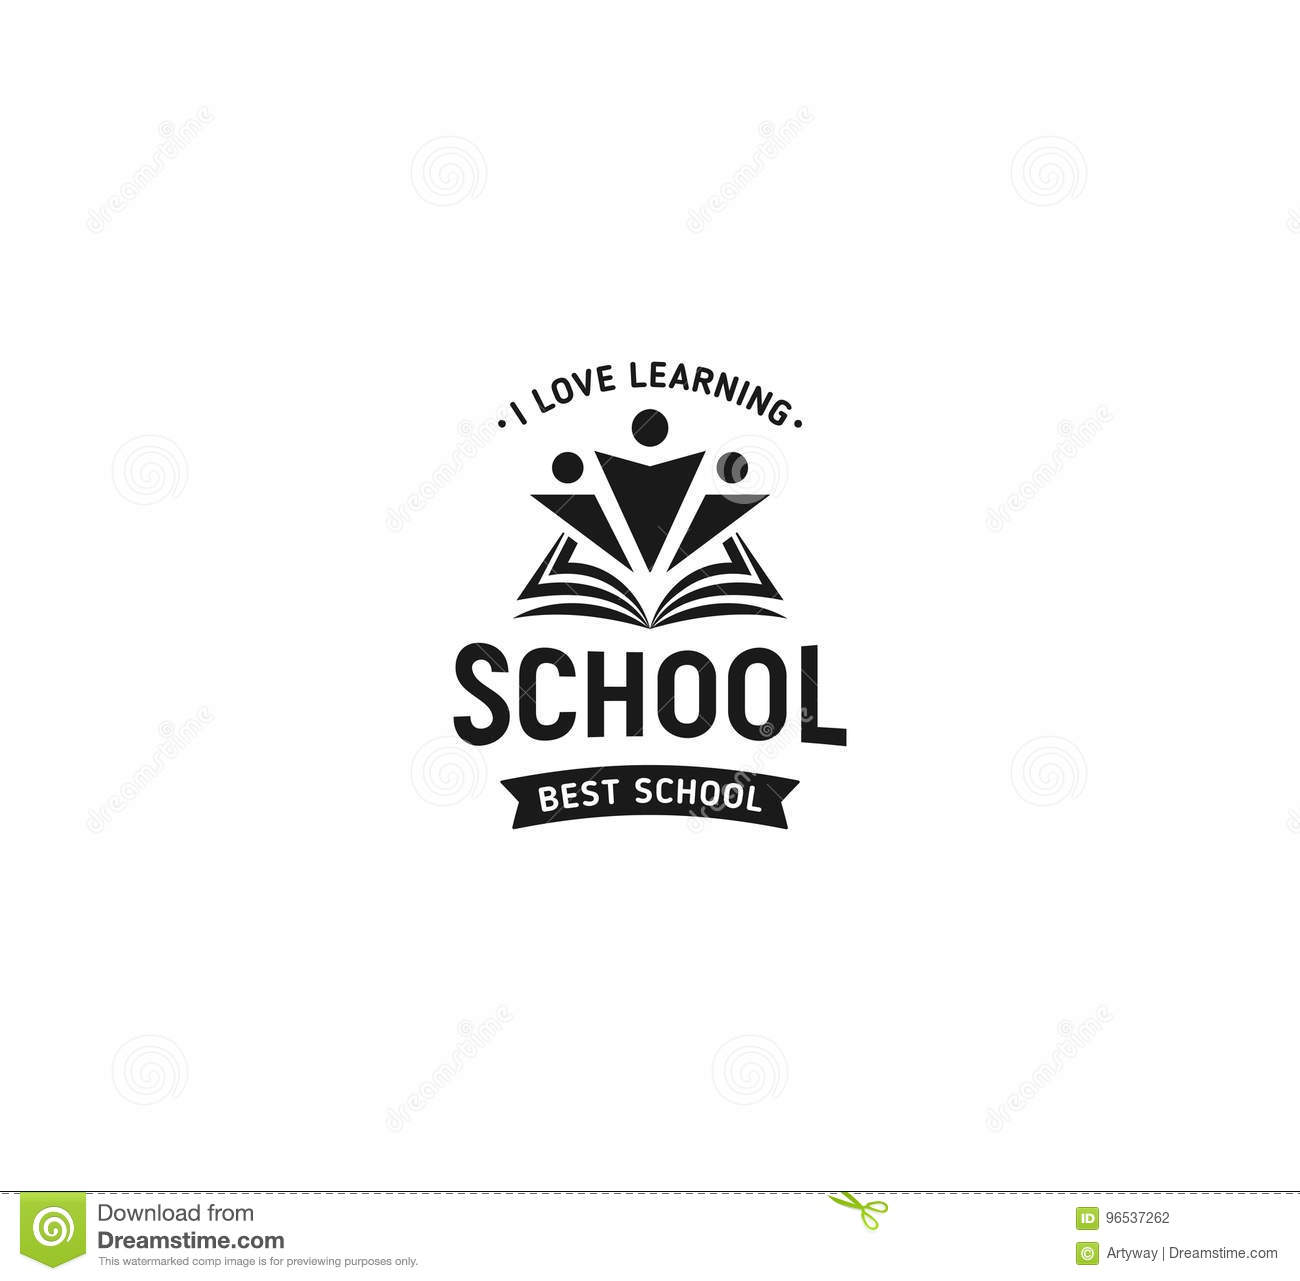 School logo vector. Monochrome vintage style design educational learning sign. Back to school, university, college retro